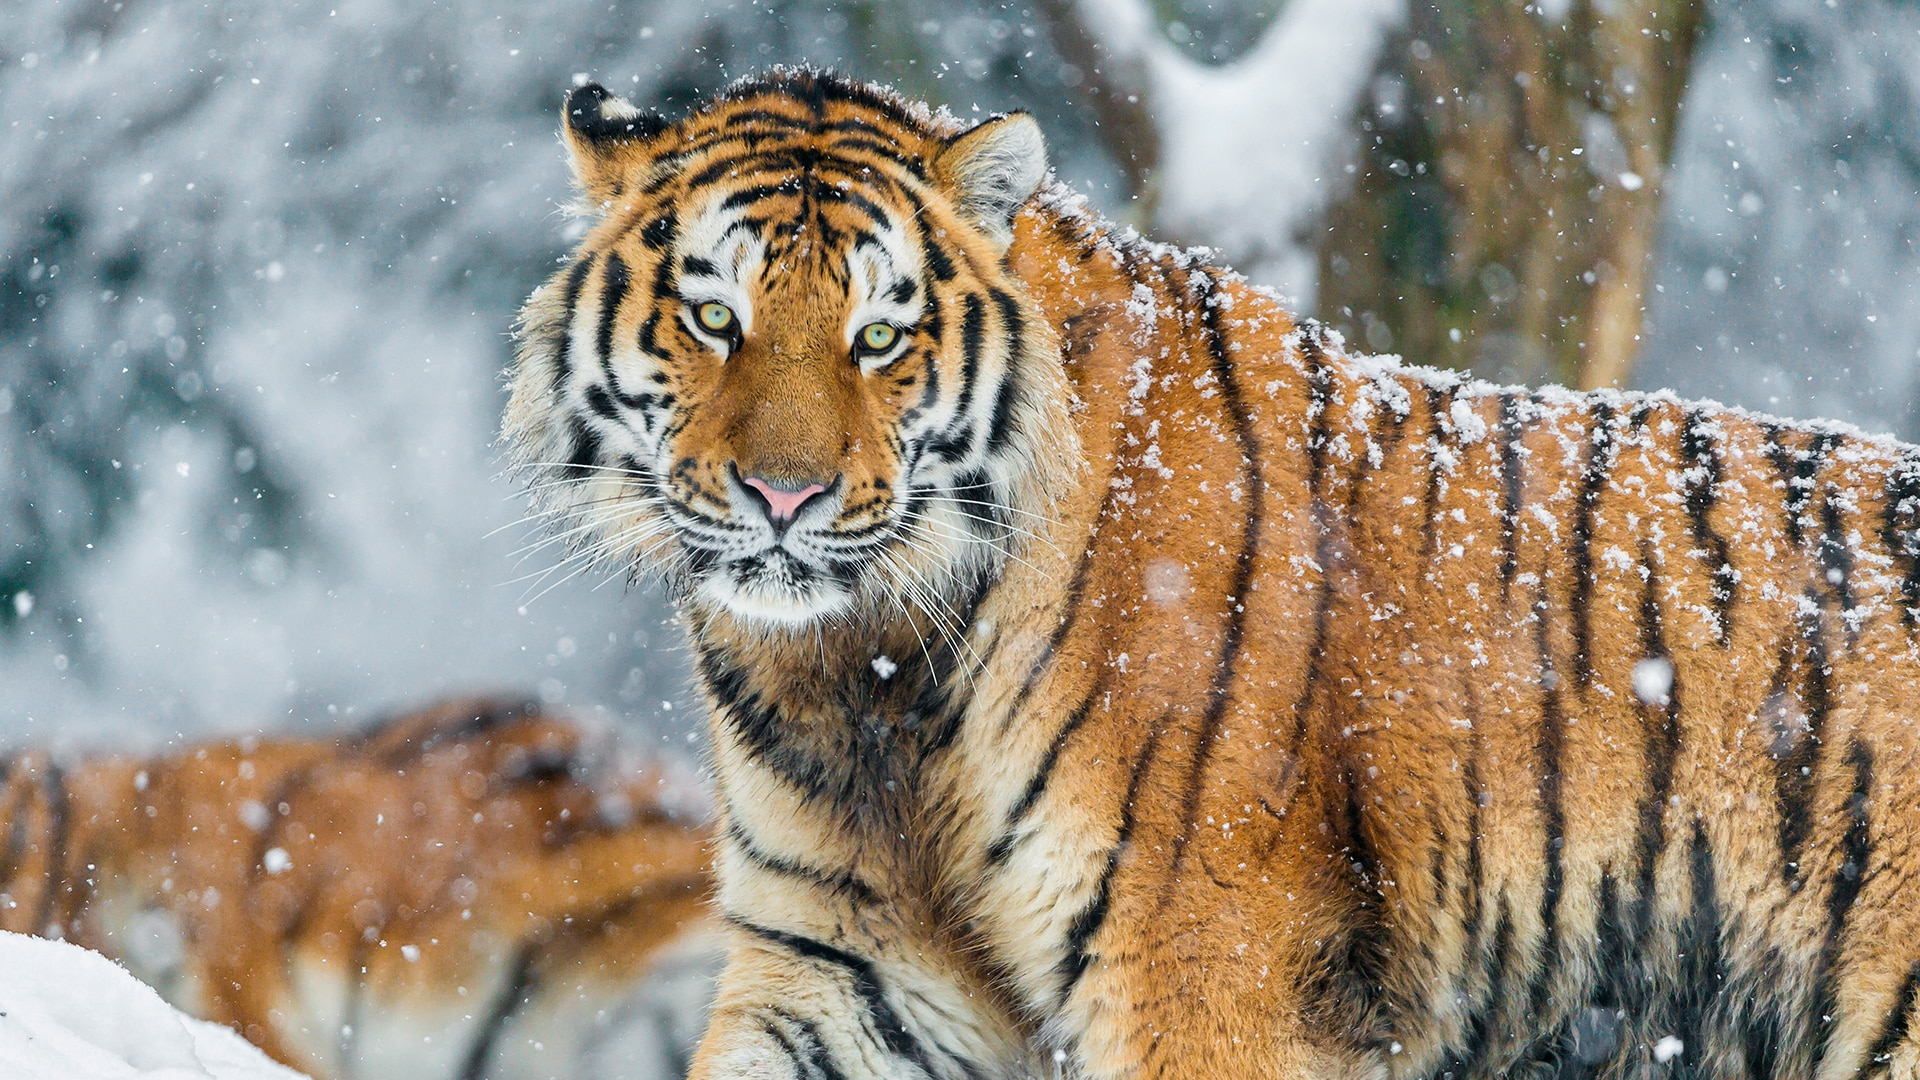 Amur tiger with bright green eyes faces camera in the snow